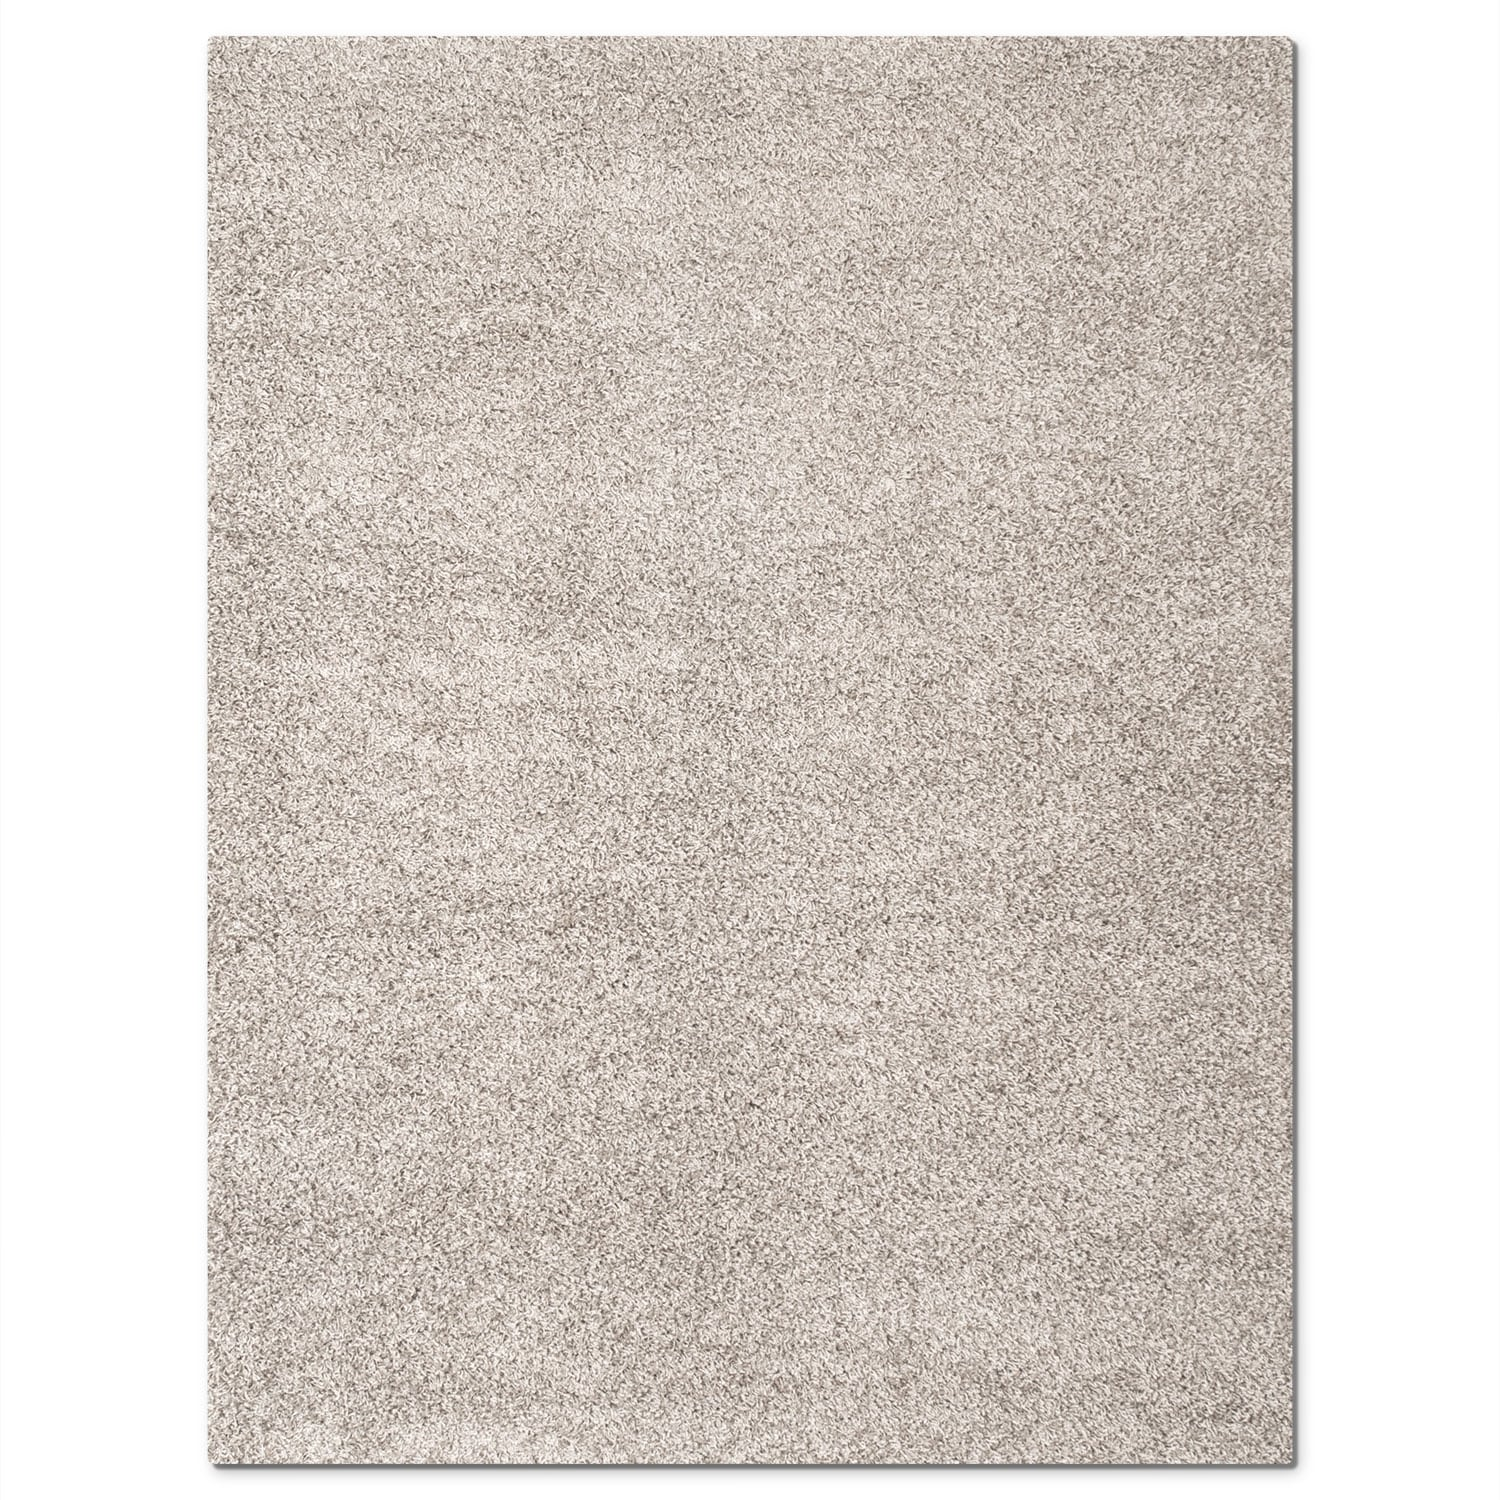 Domino gray shag area rug 839 x 1039 value city furniture for Gray shag rug